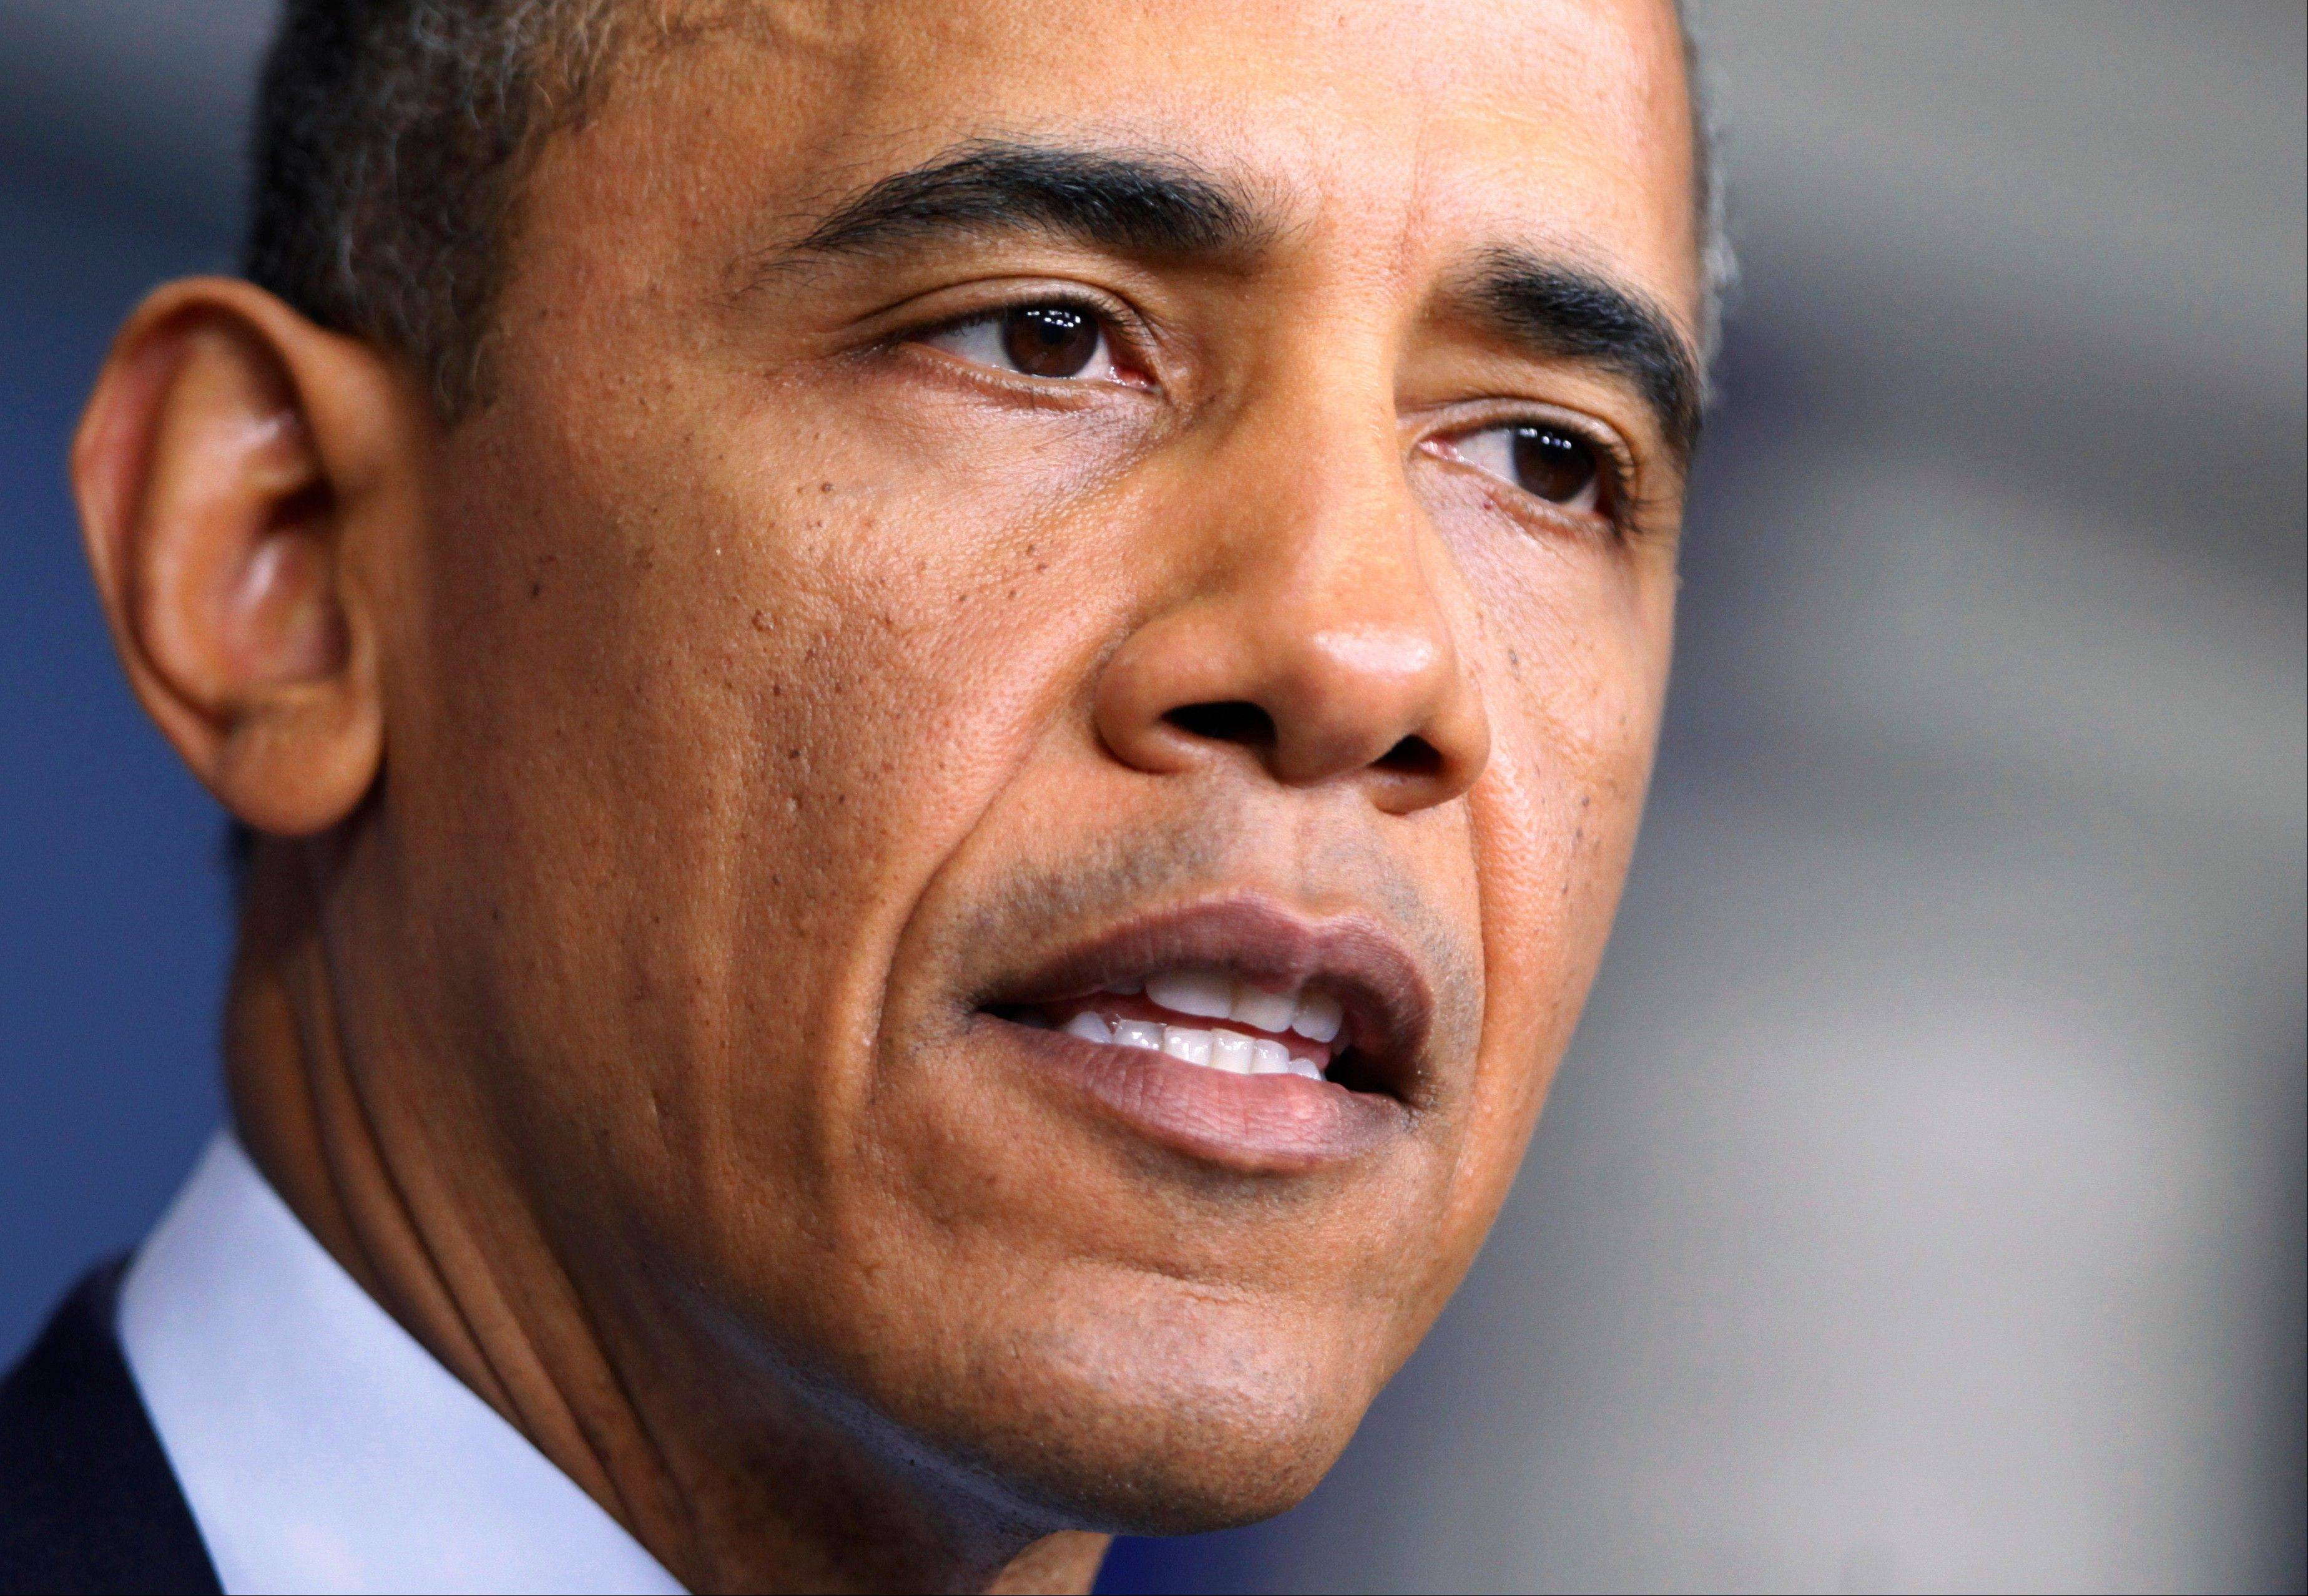 Obama: Boston culprits to feel 'weight of justice'